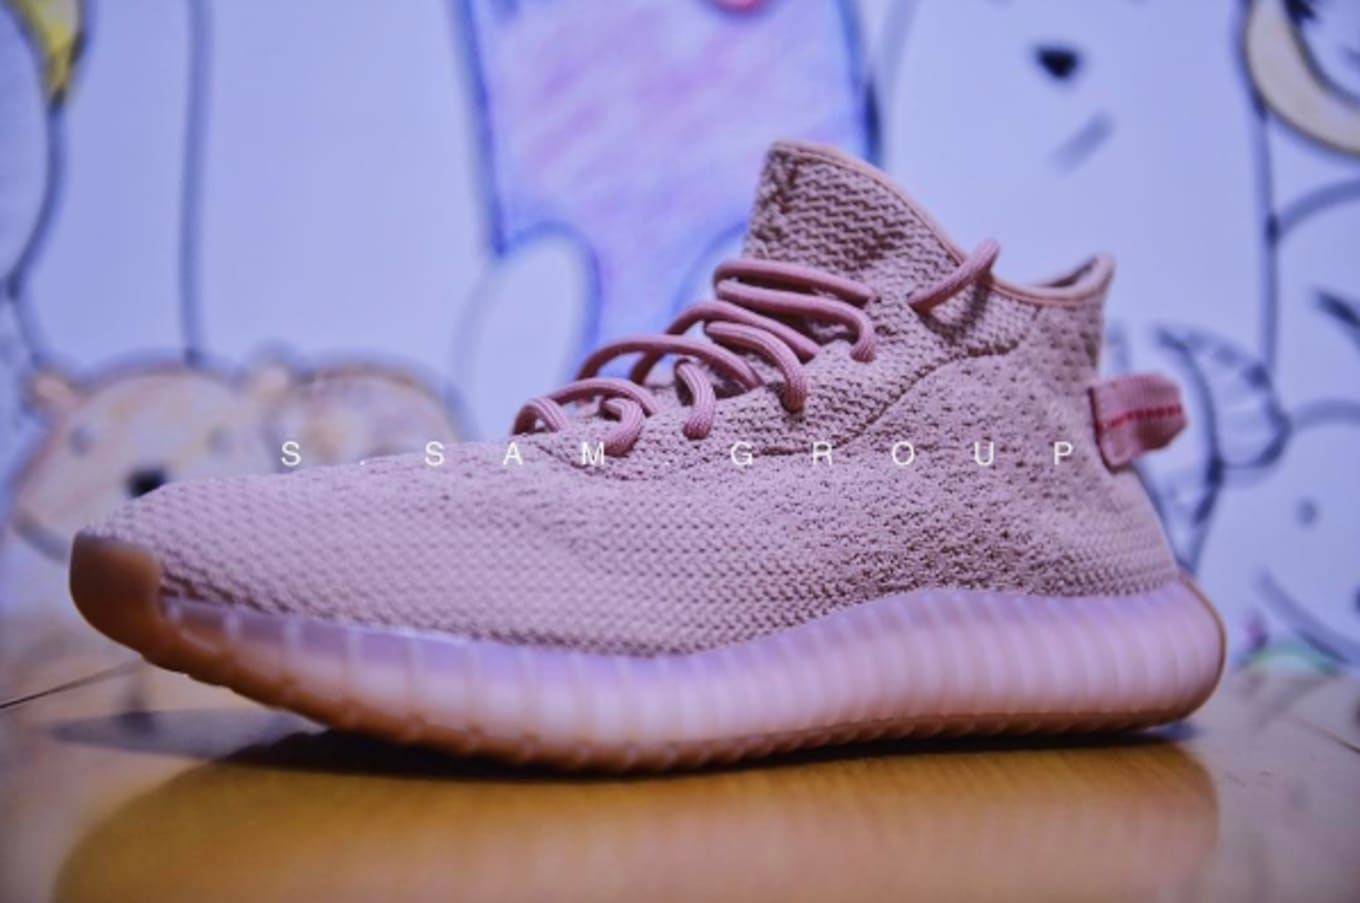 Adidas Yeezy Boost 650 Sample | Sole Collector